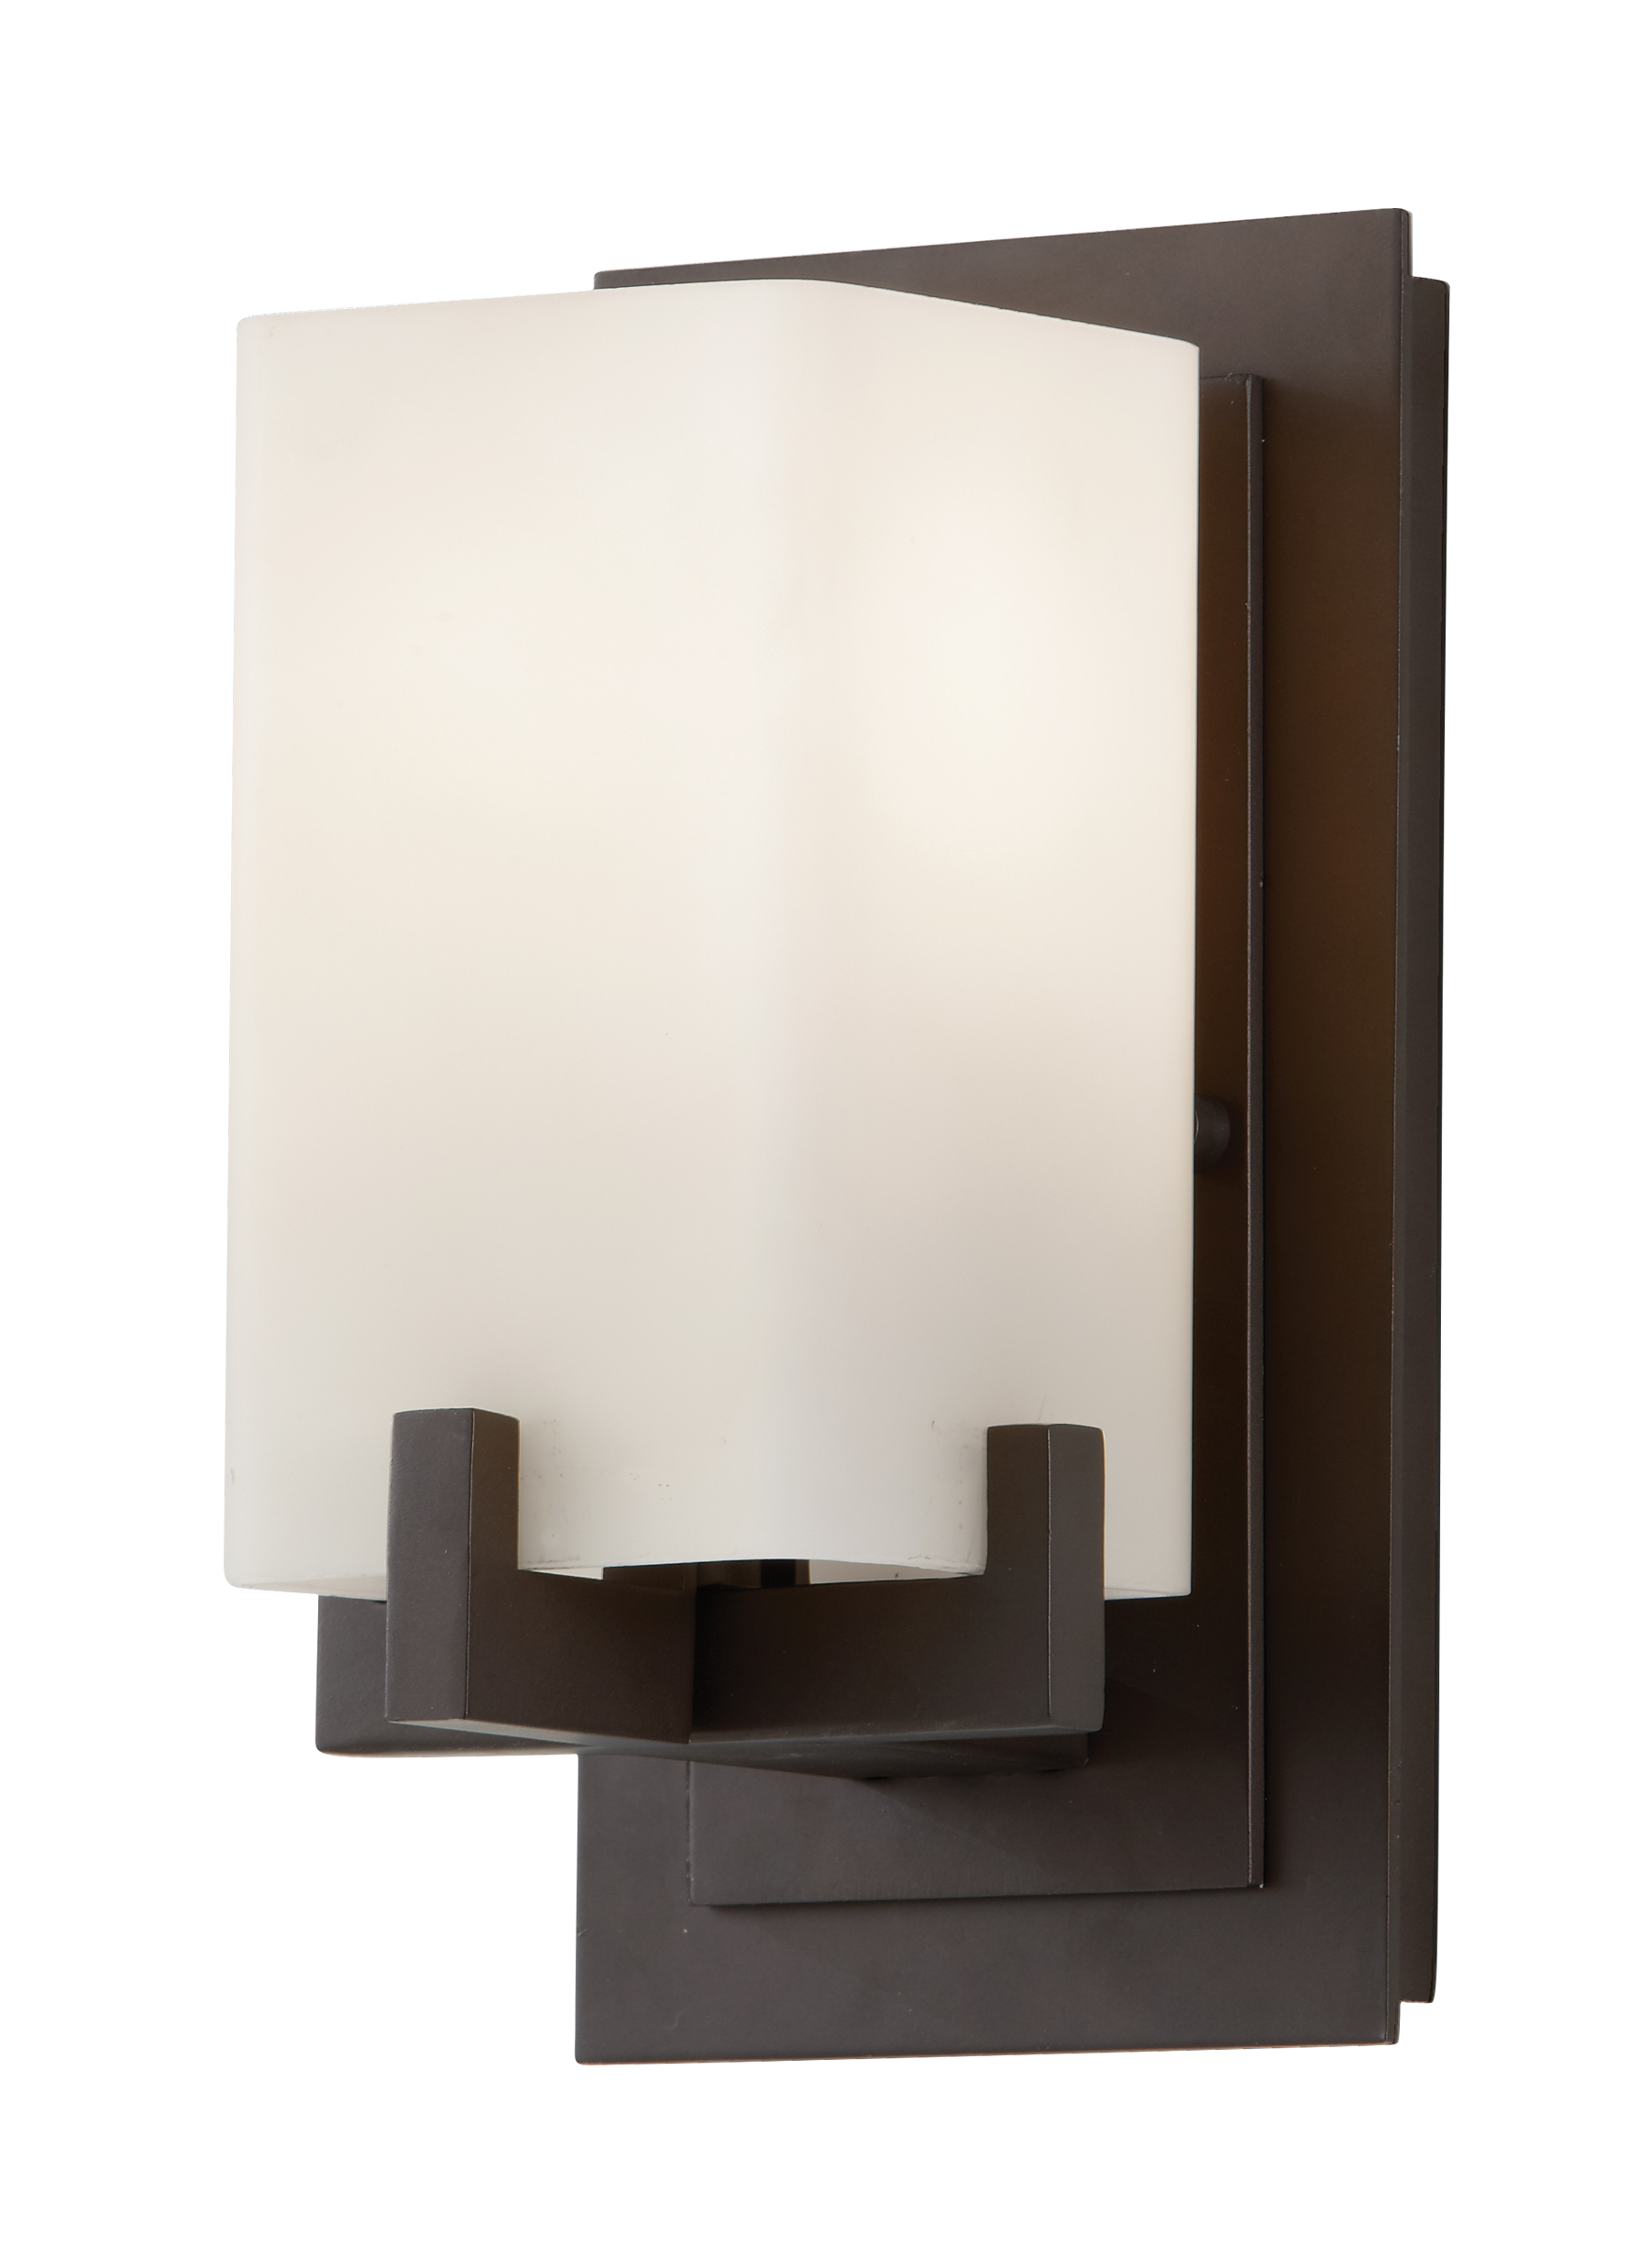 Vs18401 orb1 light vanity fixtureoil rubbed bronze loading zoom mozeypictures Image collections